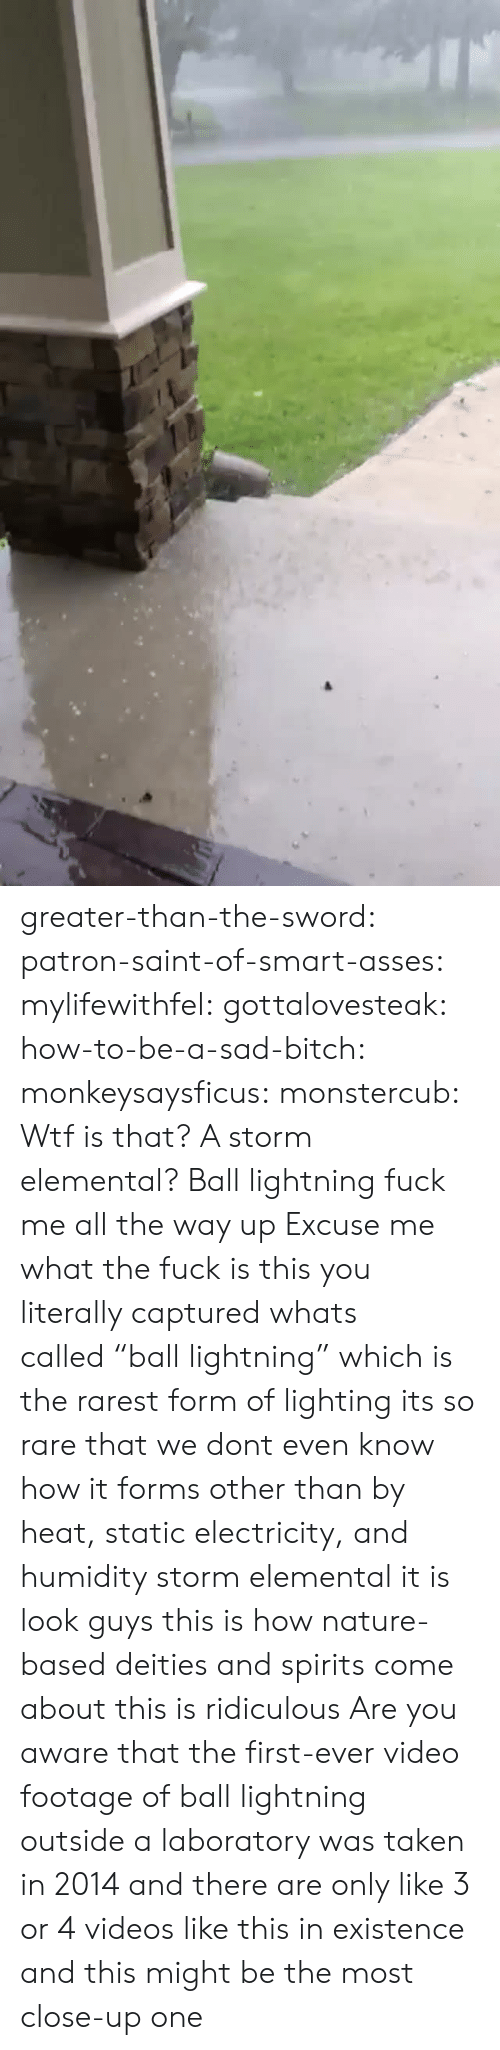 "Wtf Is That: greater-than-the-sword:  patron-saint-of-smart-asses:  mylifewithfel:  gottalovesteak:  how-to-be-a-sad-bitch:  monkeysaysficus:   monstercub: Wtf is that? A storm elemental?  Ball lightning fuck me all the way up   Excuse me what the fuck is this  you literally captured whats called ""ball lightning"" which is the rarest form of lighting its so rare that we dont even know how it forms other than by heat, static electricity, and humidity  storm elemental it is  look guys this is how nature-based deities and spirits come about this is ridiculous  Are you aware that the first-ever video footage of ball lightning outside a laboratory was taken in 2014 and there are only like 3 or 4 videos like this in existence and this might be the most close-up one"